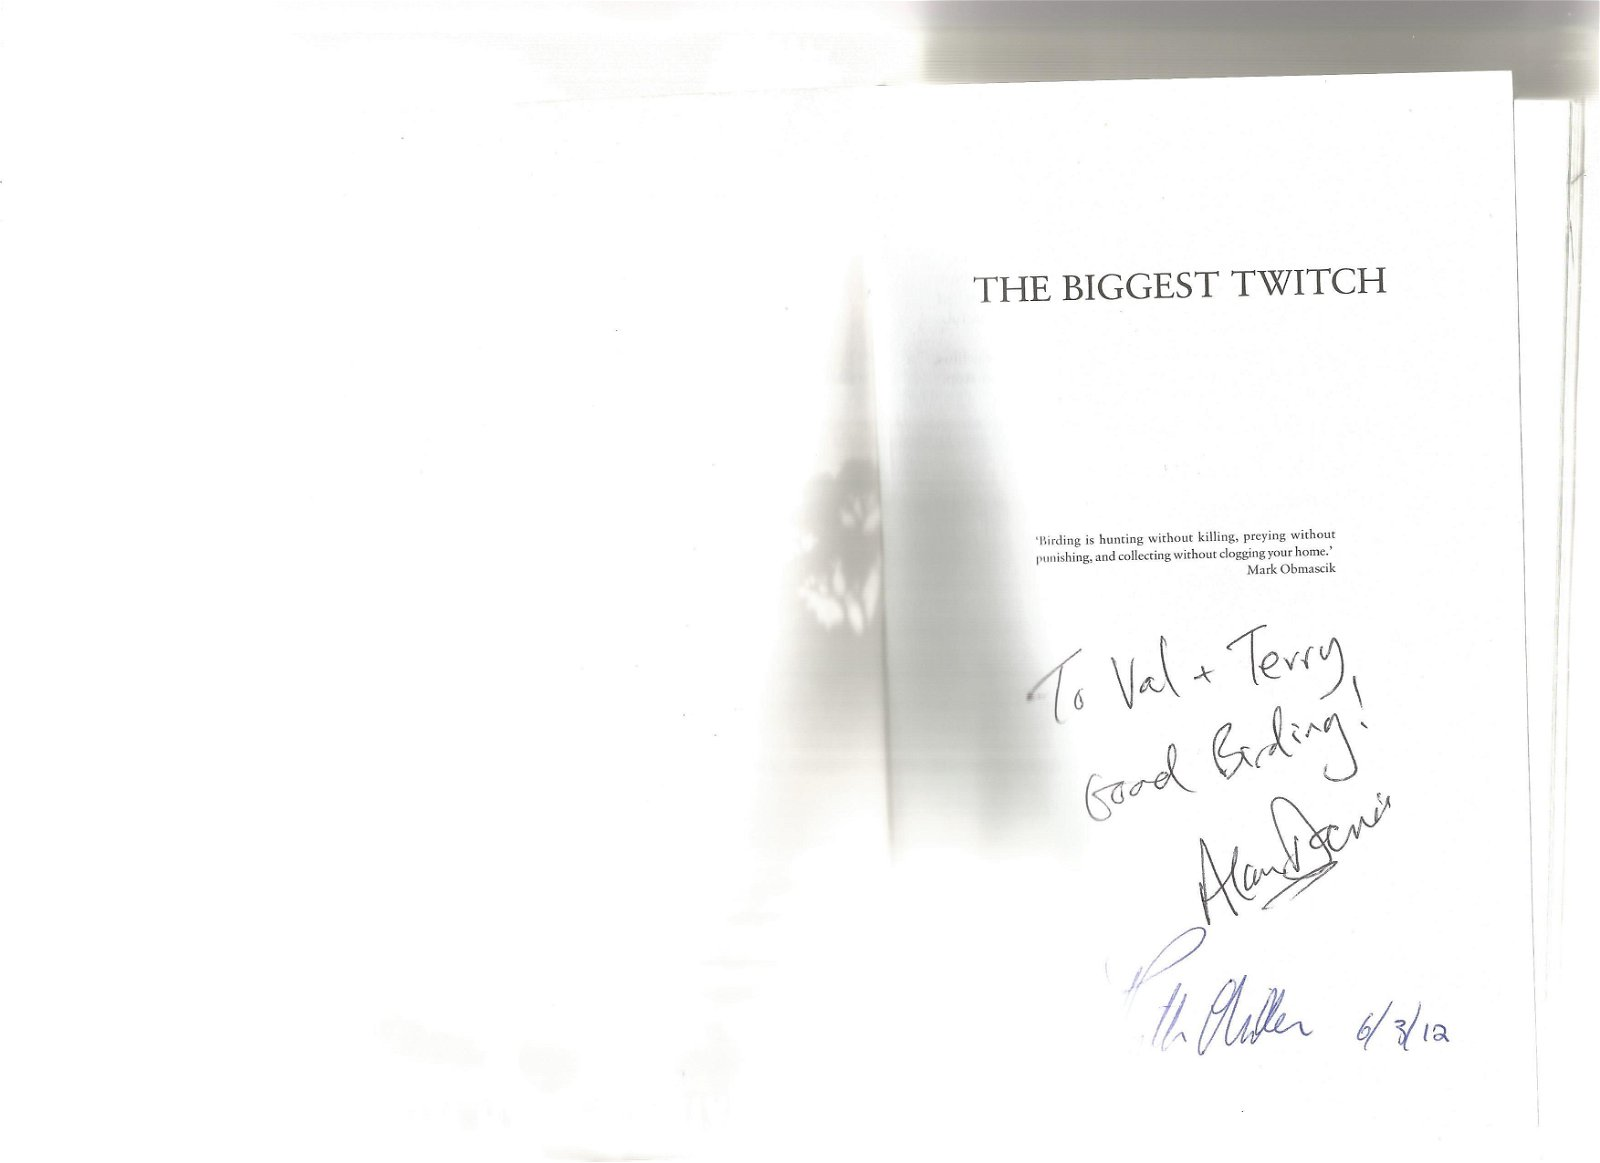 Alan Davies and Ruth Miller signed The Biggest Twitch